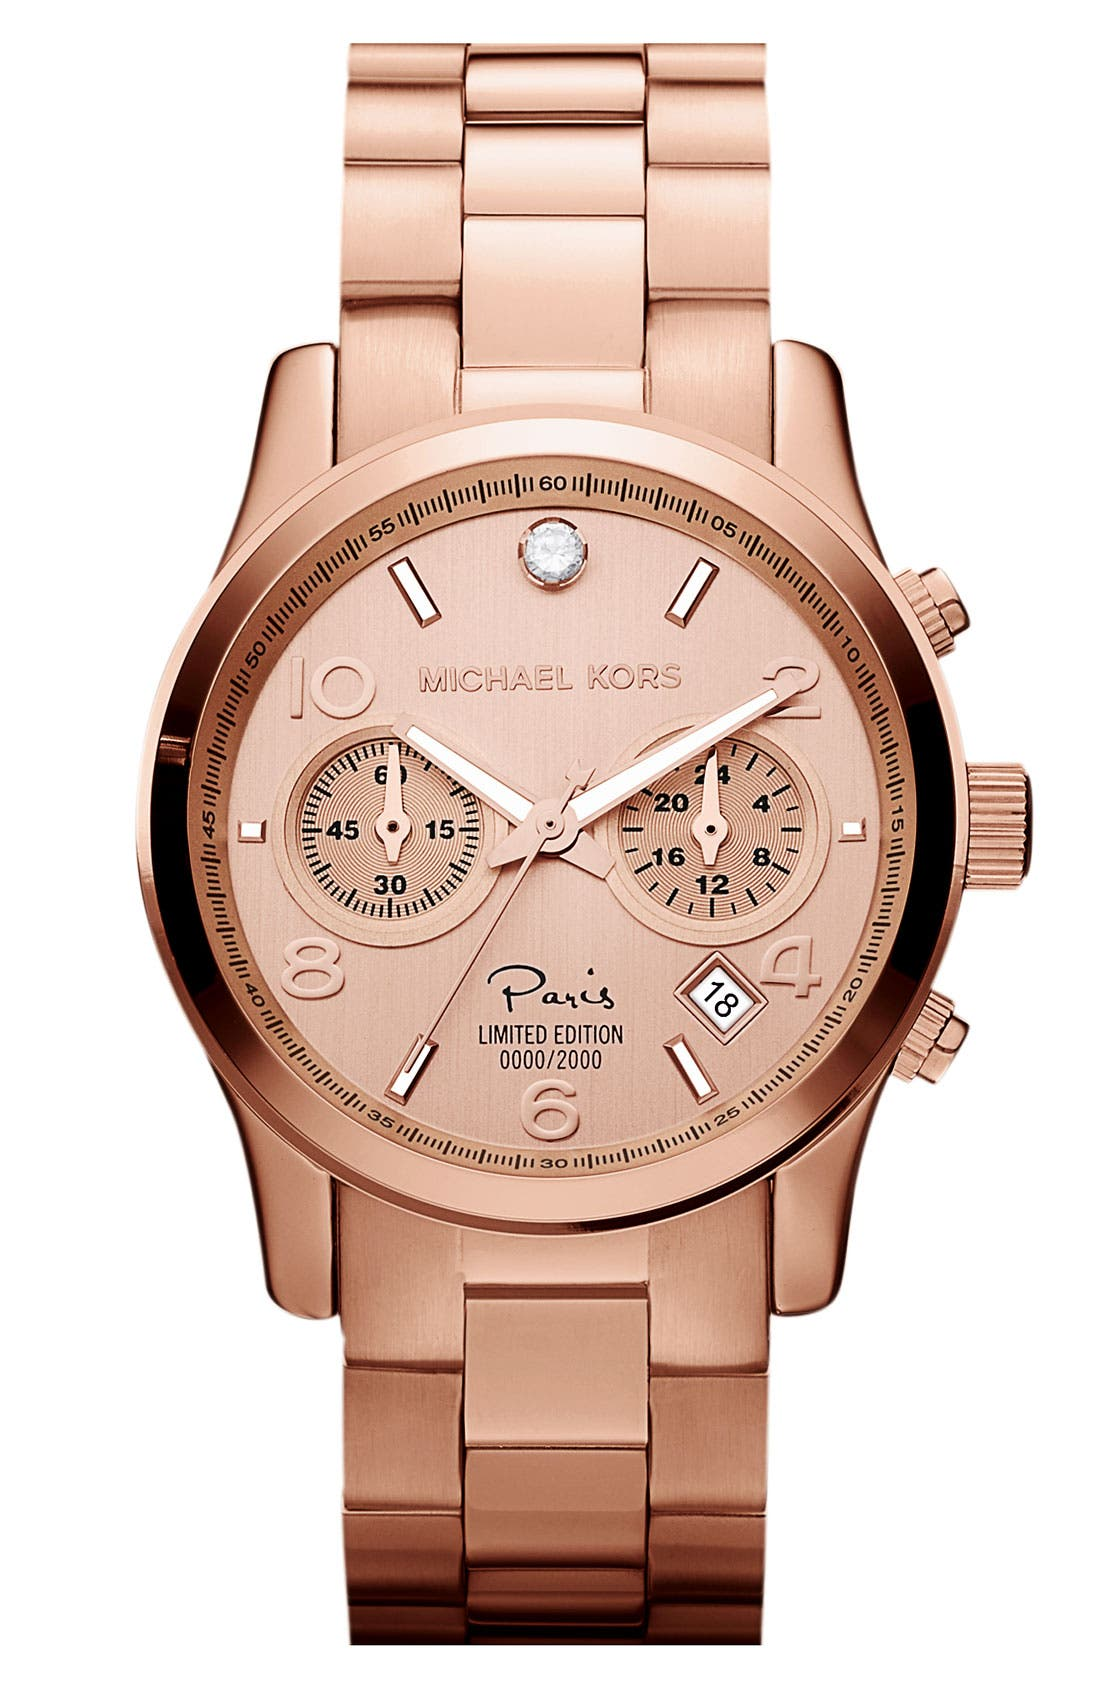 Main Image - Michael Kors 'Runway - Paris' Chronograph Watch (Limited Edition)